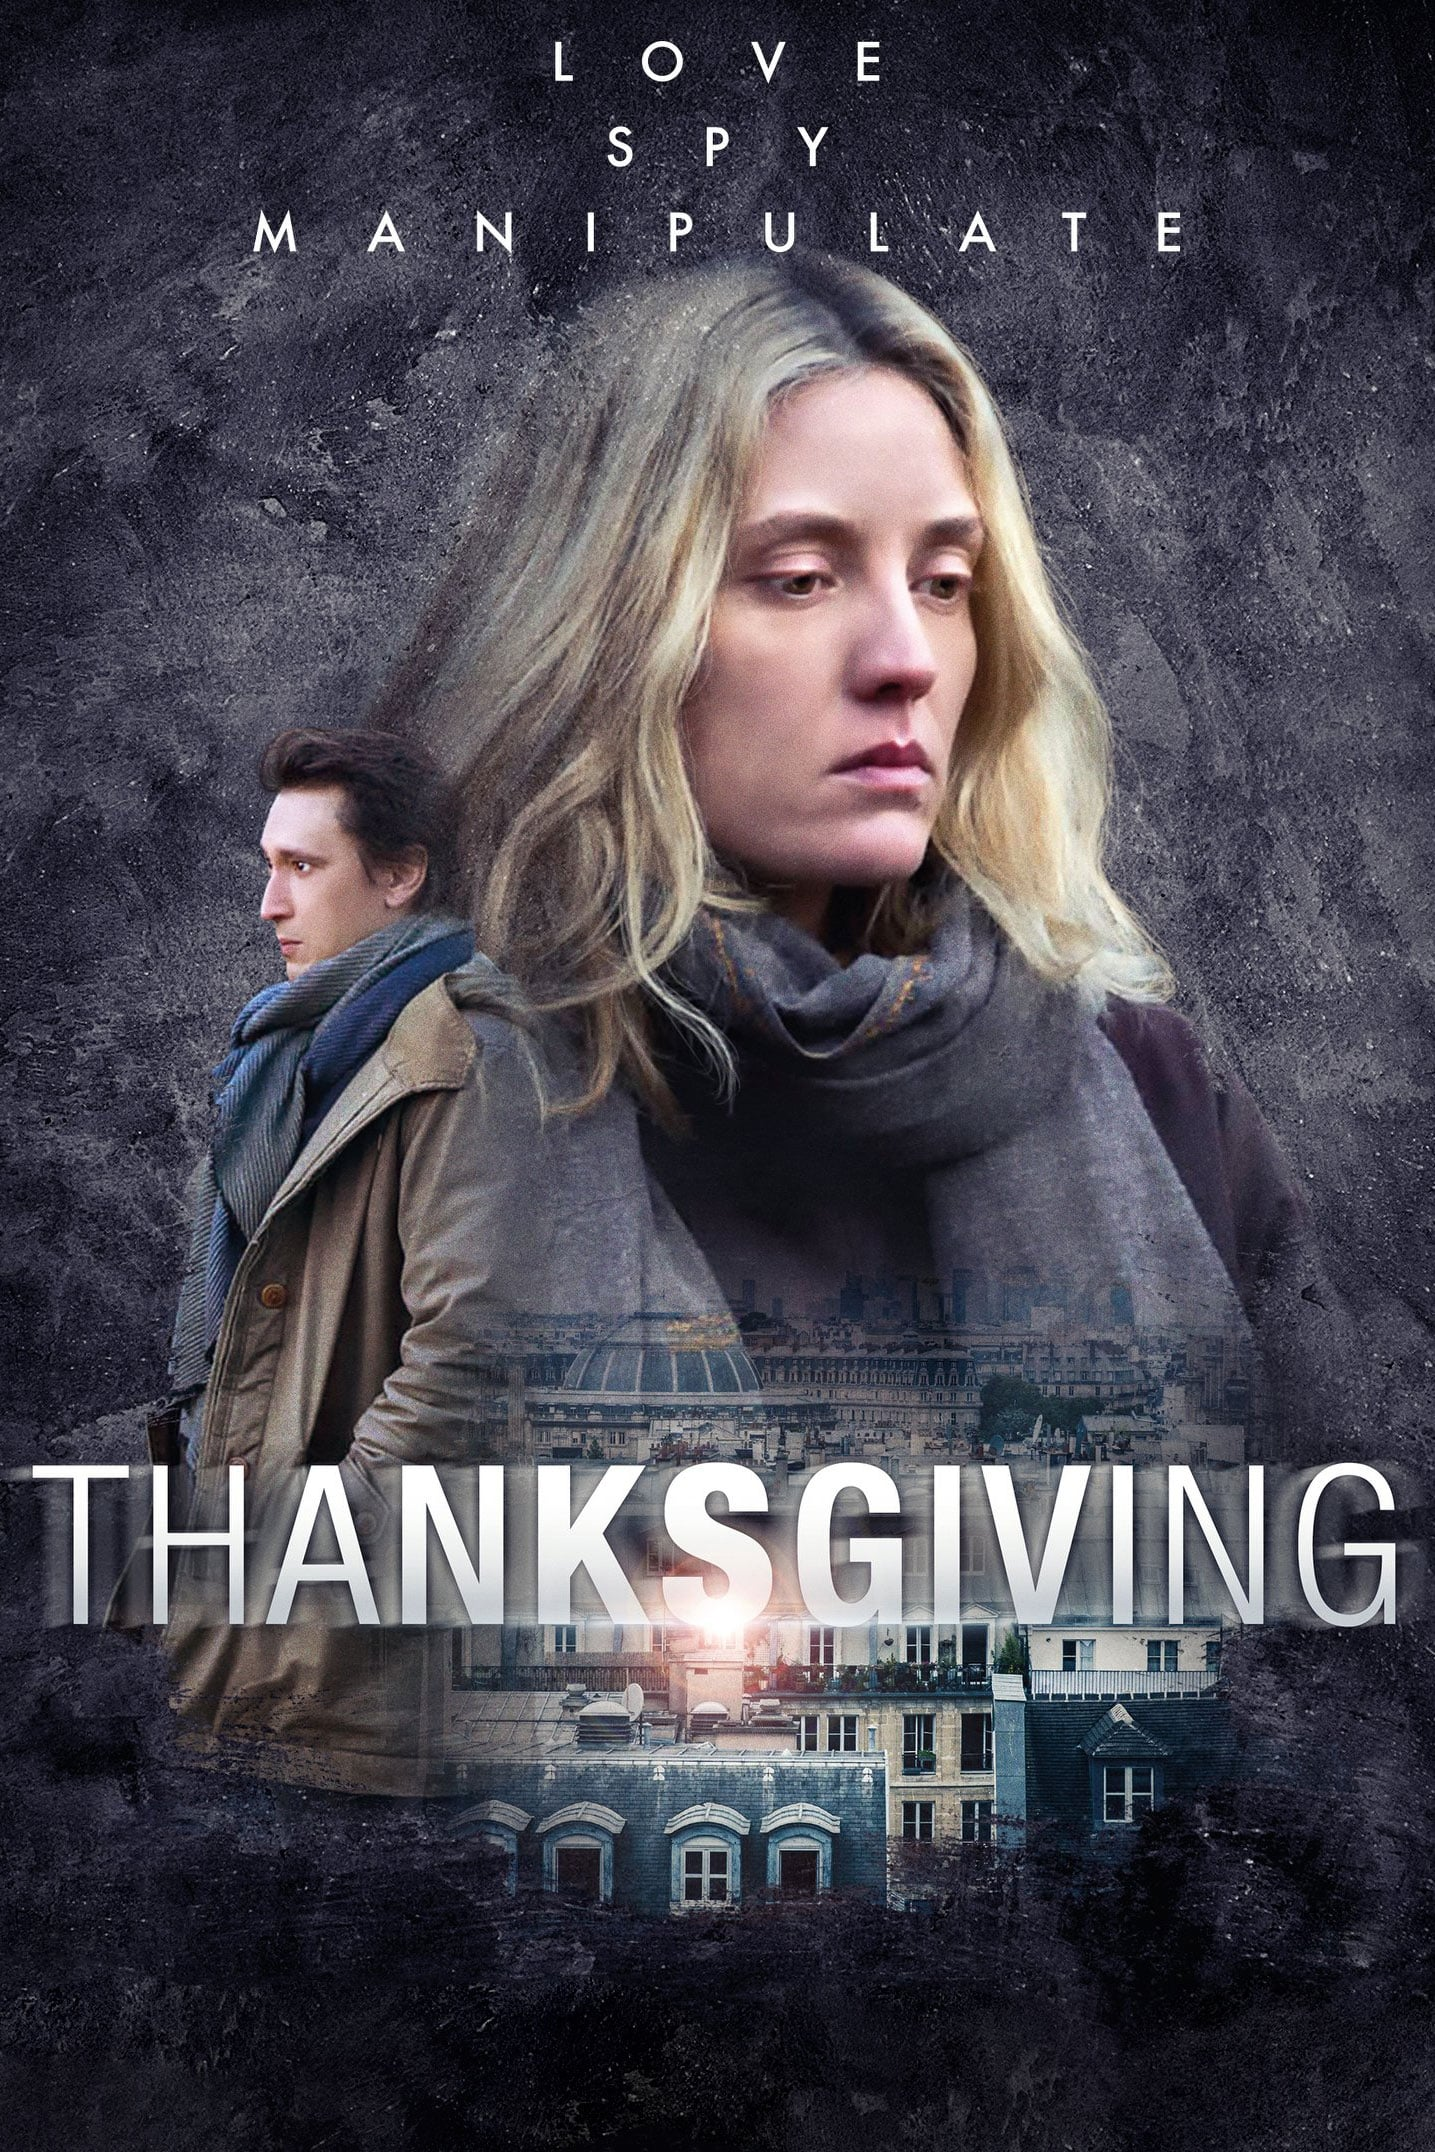 Thanksgiving TV Shows About Spy